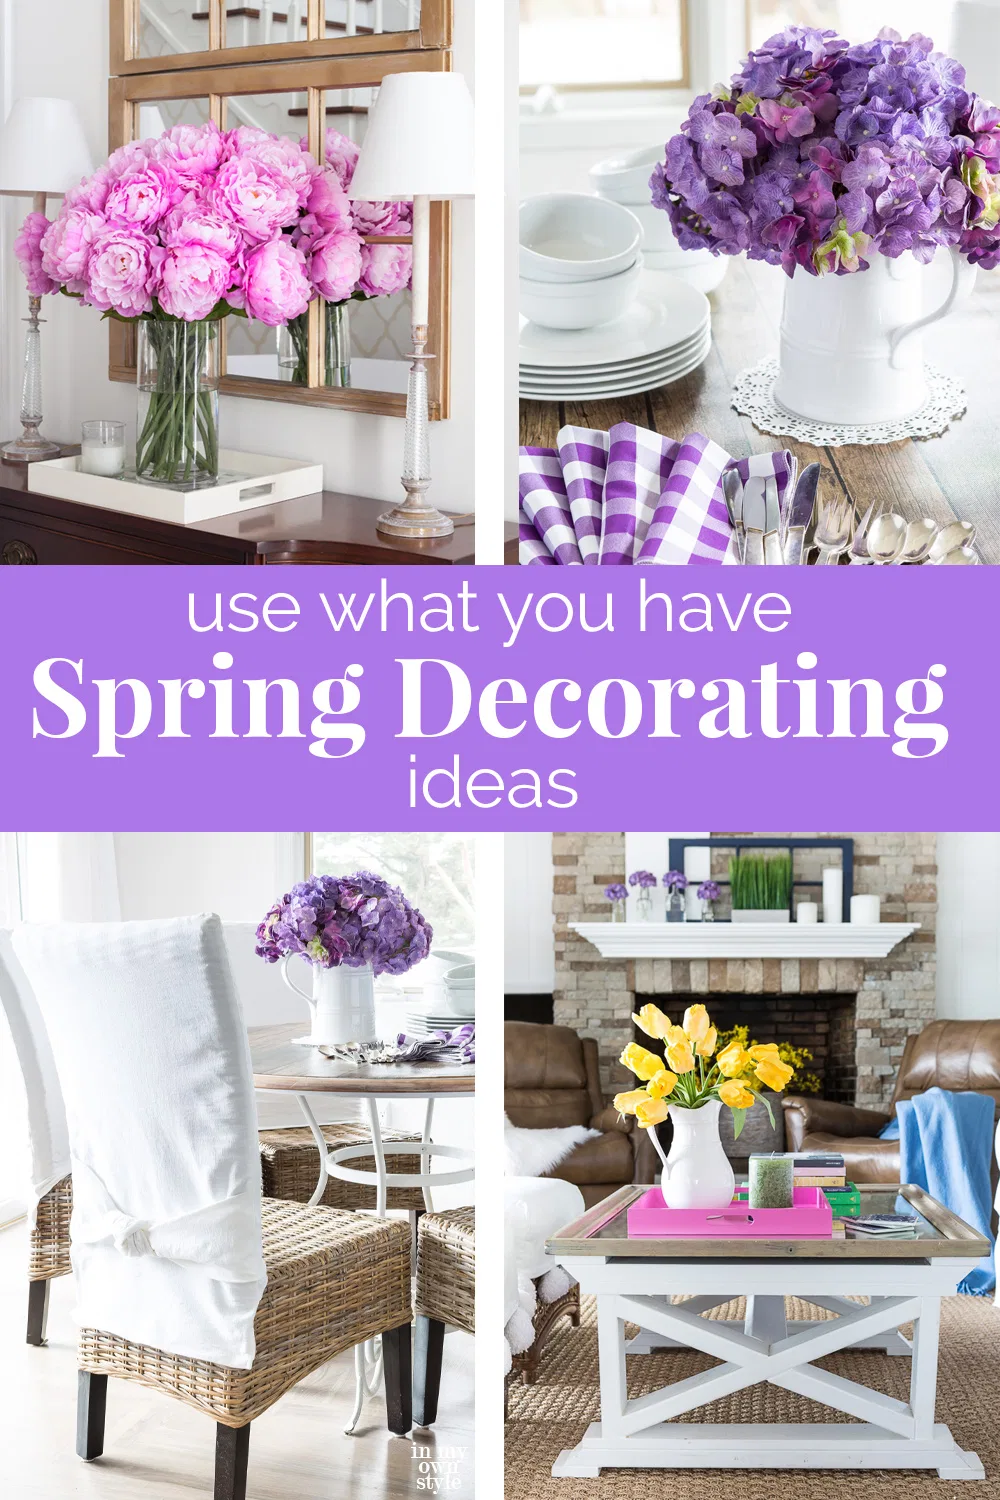 Spring decorating ideas that you can do in your home using items you already own. Use what you have decorating was never as easy and colorful as the ideas you will find in this home decorating ideas post. #springdecorating #usewhatyouhavedecor #Budgetdecorating #springrefresh